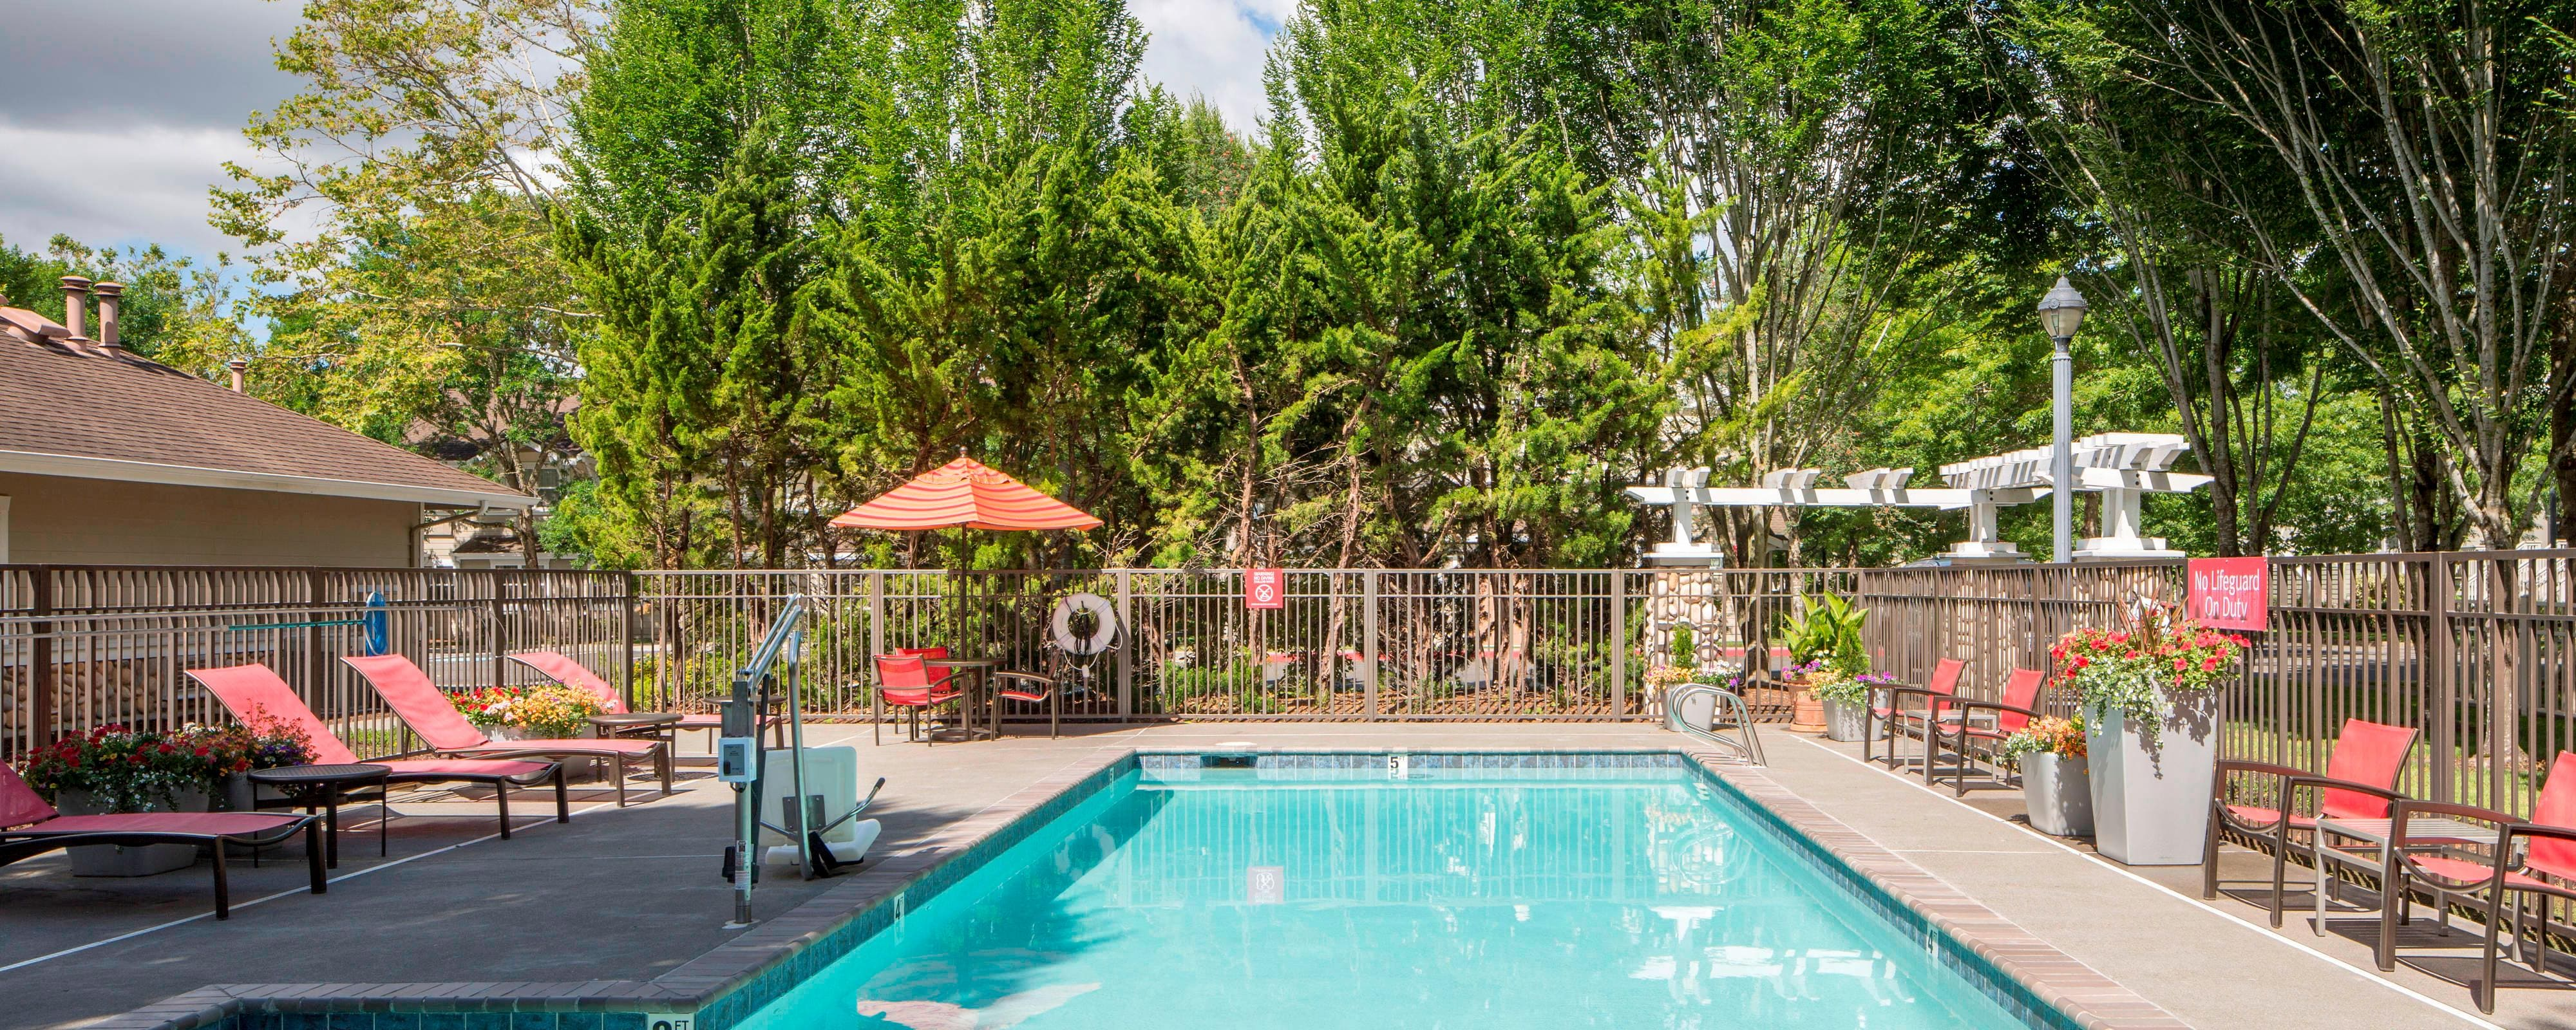 Seasonal Outdoor Pool Marriott Hillsboro Hotel